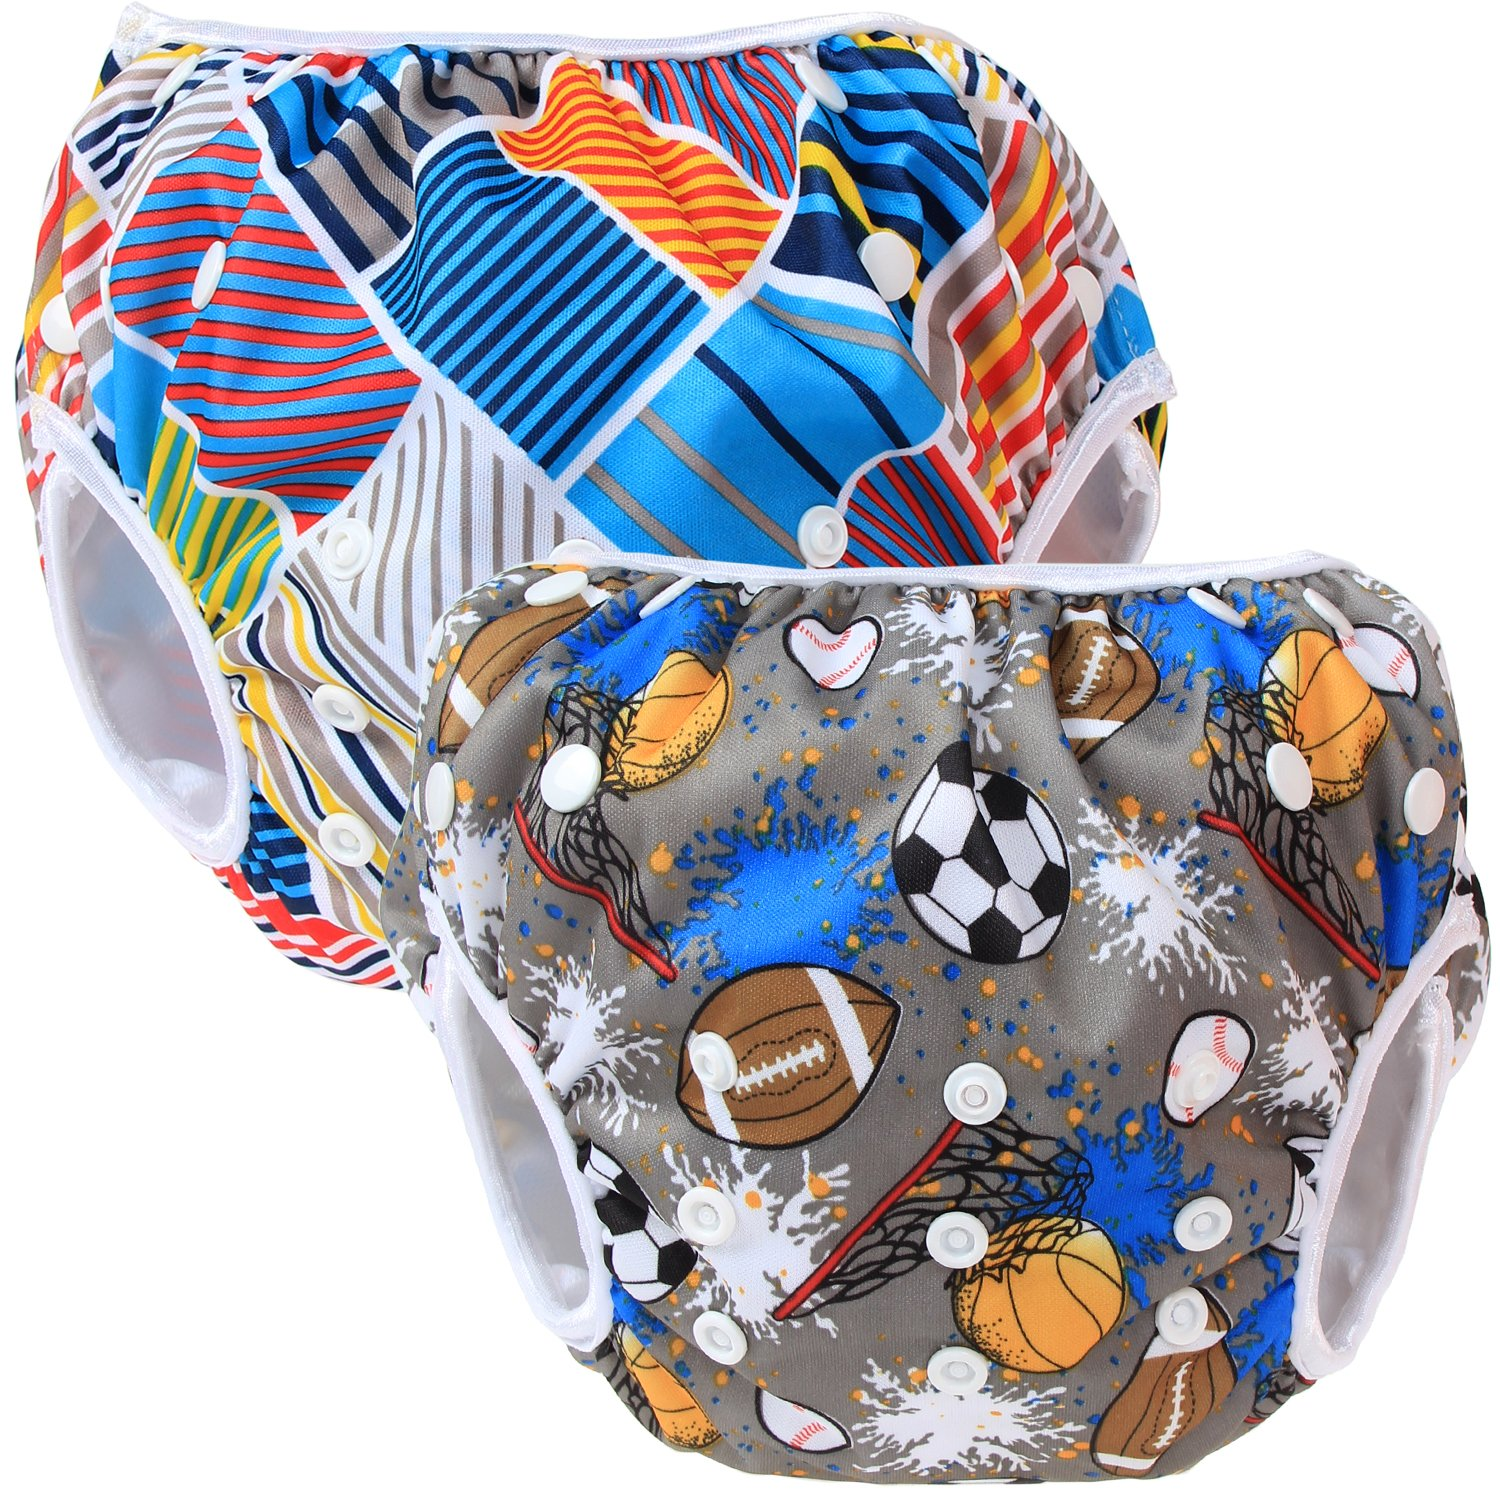 Teamoy Reusable Swim Nappy(2 Packs) for Baby Boys& Girls, Comfortable, Washable and Adjustable, Ideal for Swimming Lessons/Holiday, Camouflage+ Bees